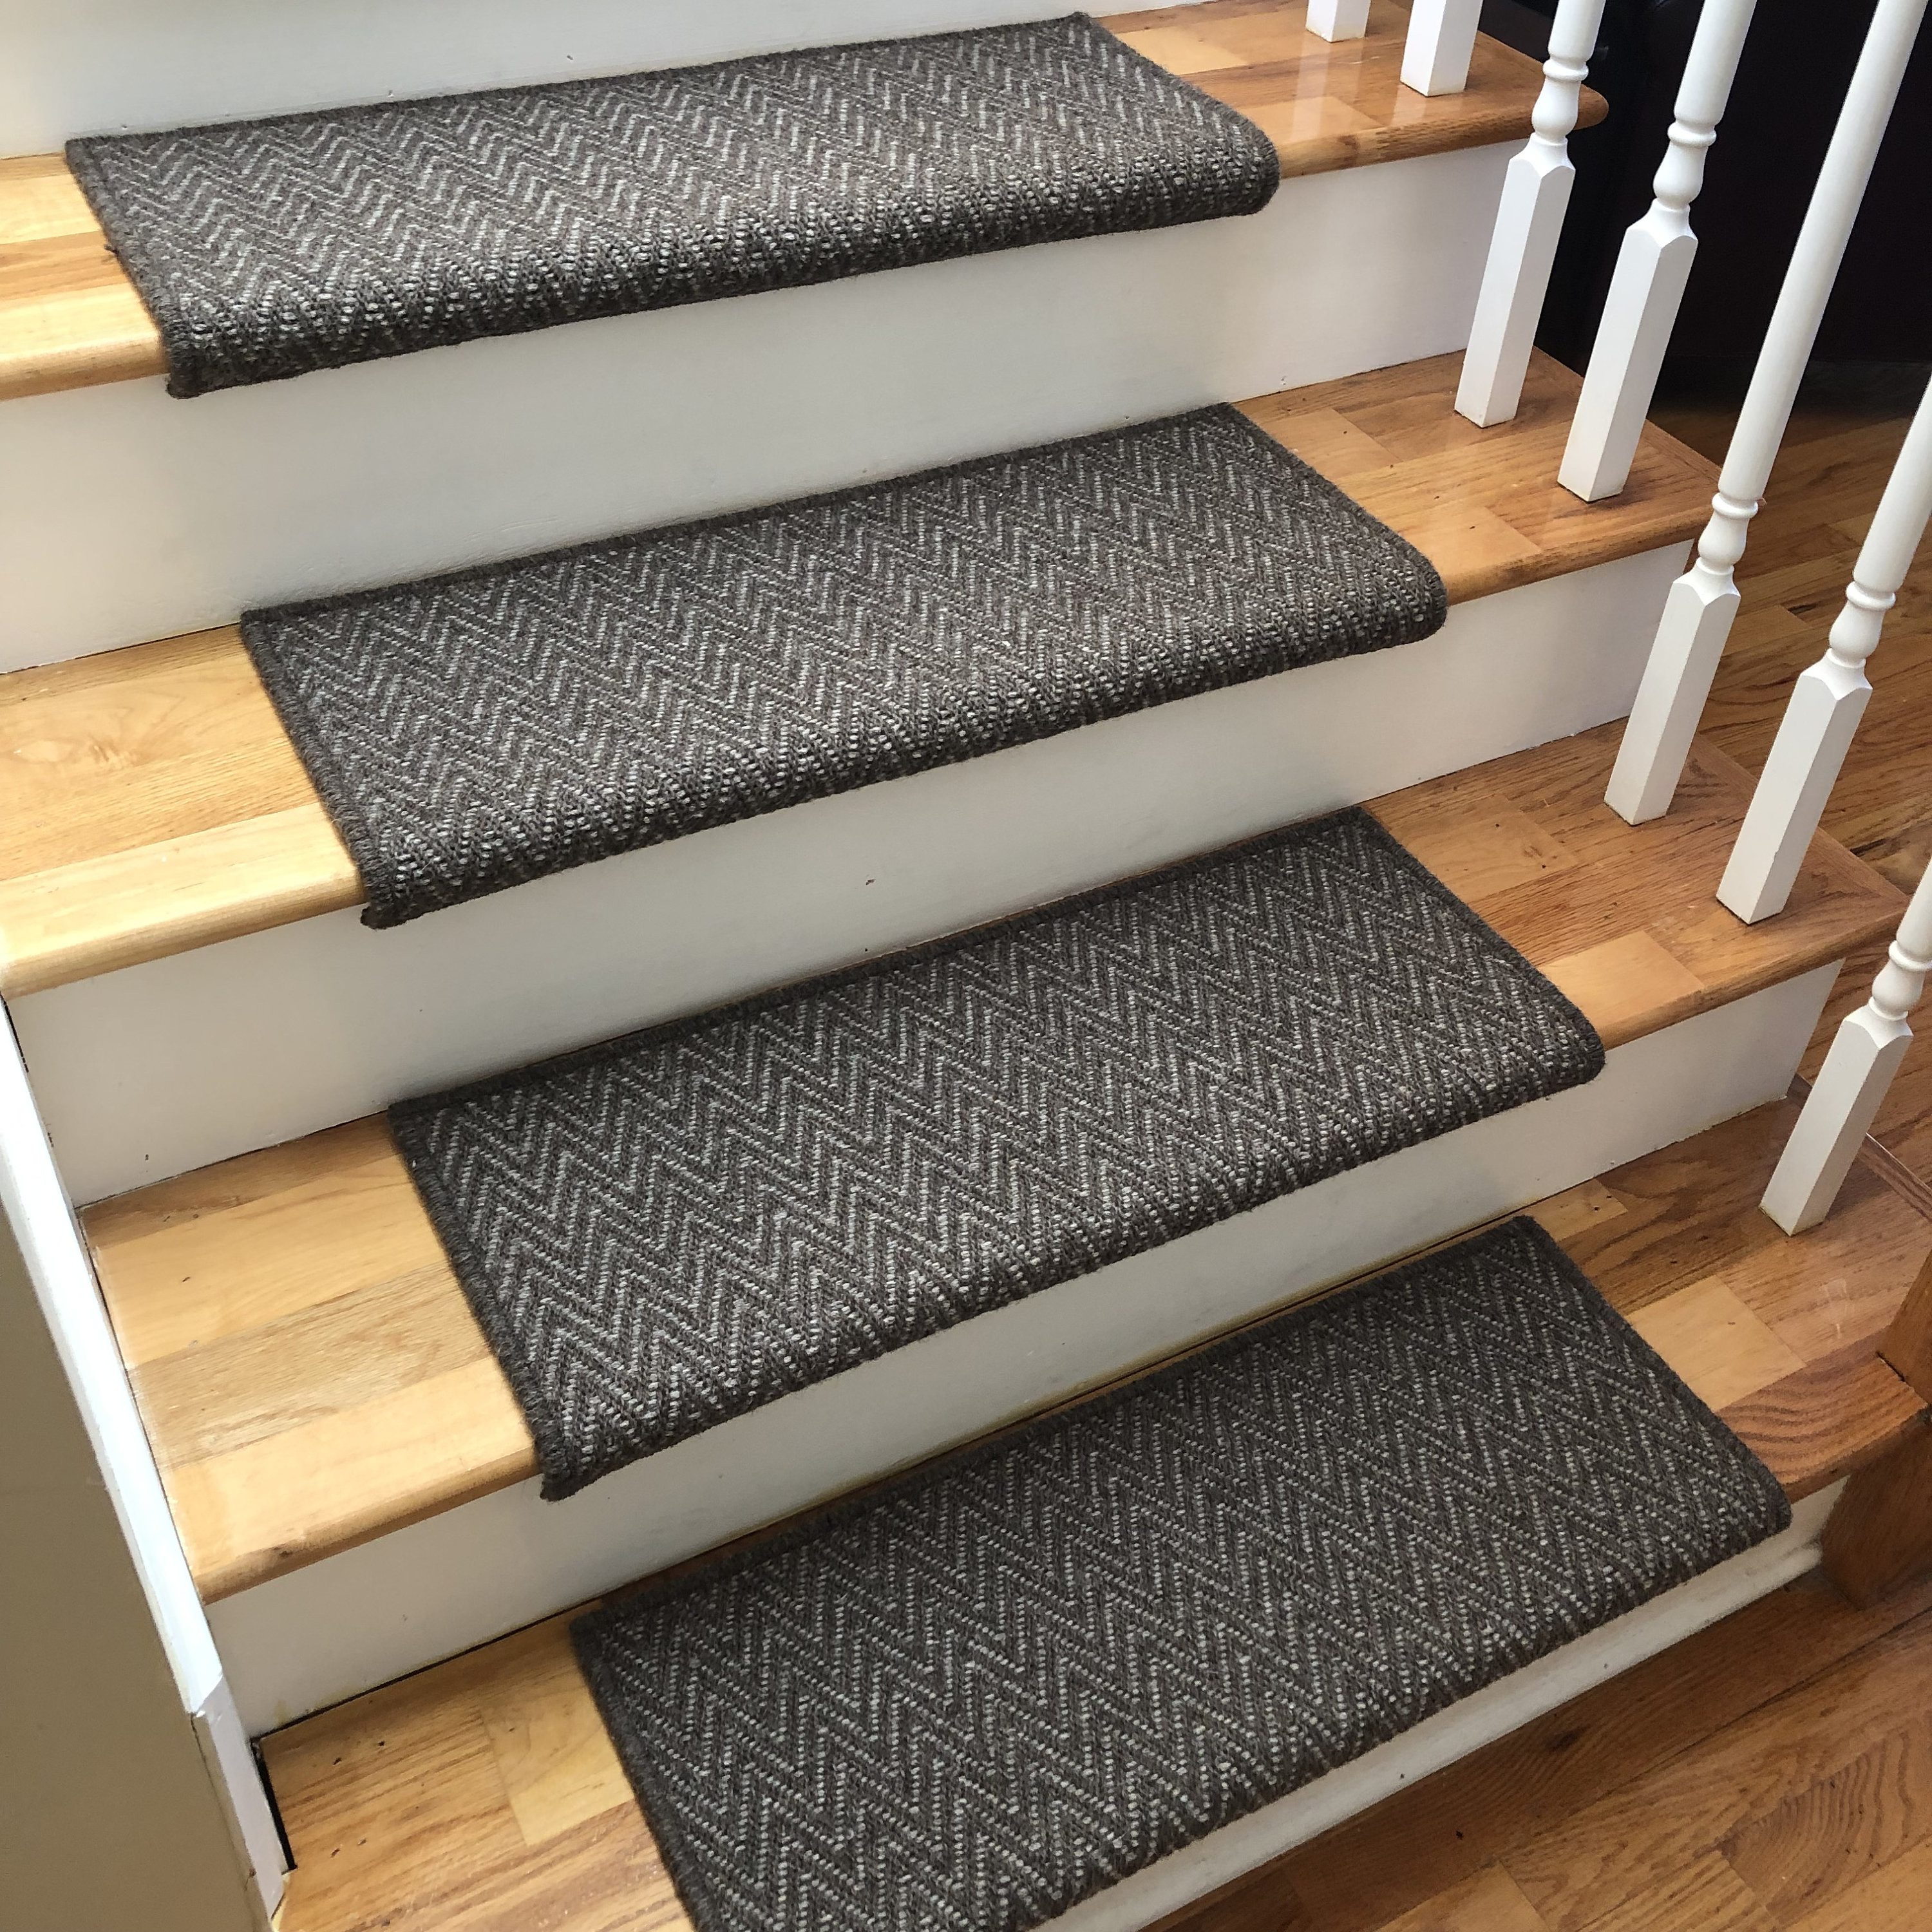 Replacing Carpet With A Stair Runner: Aspen Moose Or Caribou 100% Wool True Bullnose™ Padded